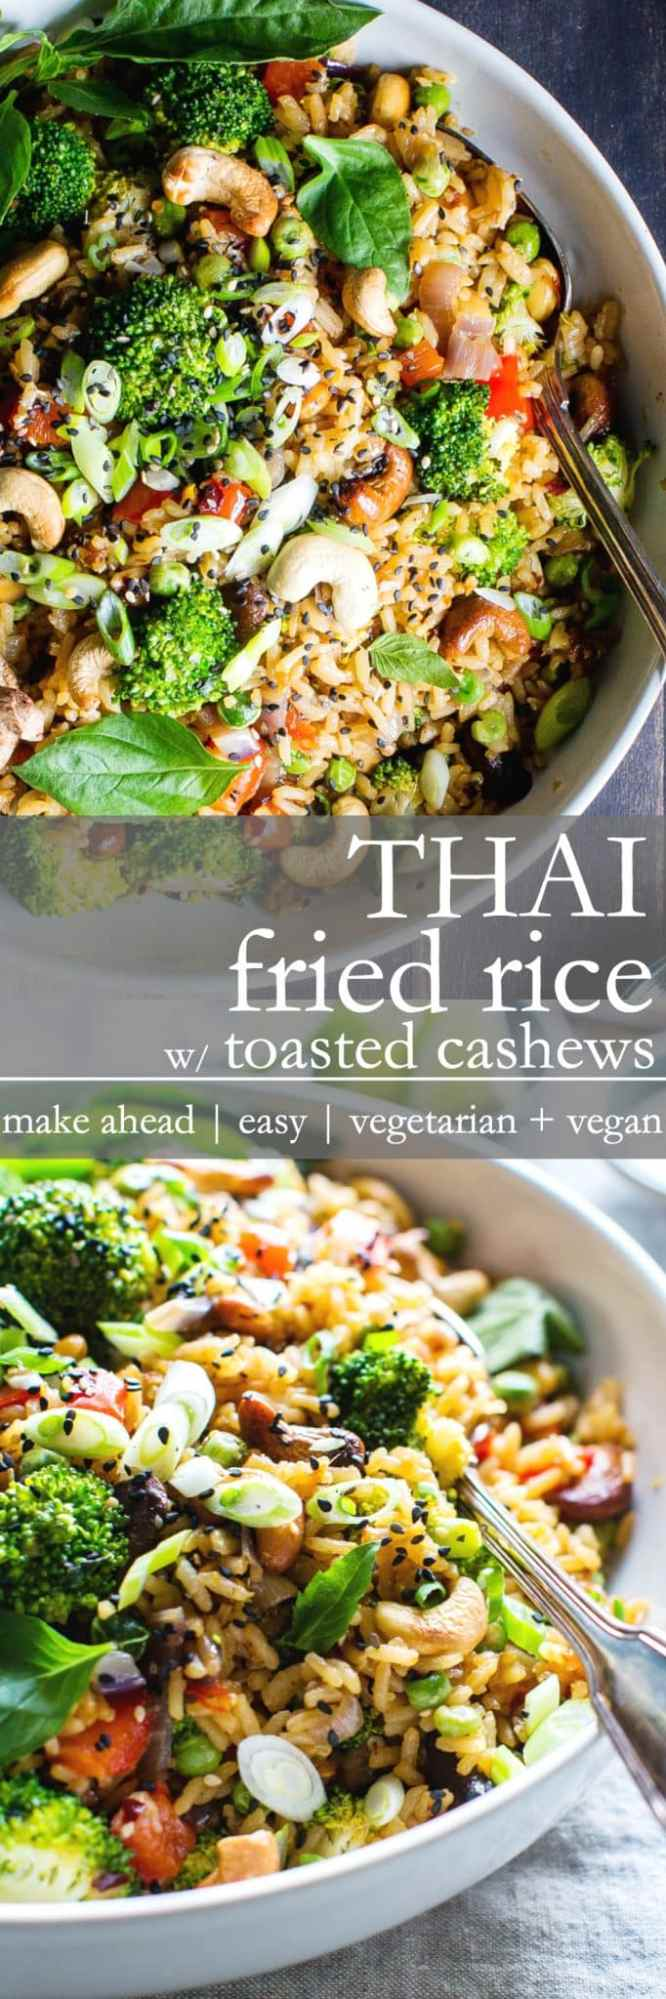 Thai Fried Rice with Toasted Cashews   Make ahead, weeknight make at home take out! Veggie packed and full on umami! This recipe is vegan + vegetarian + gluten free